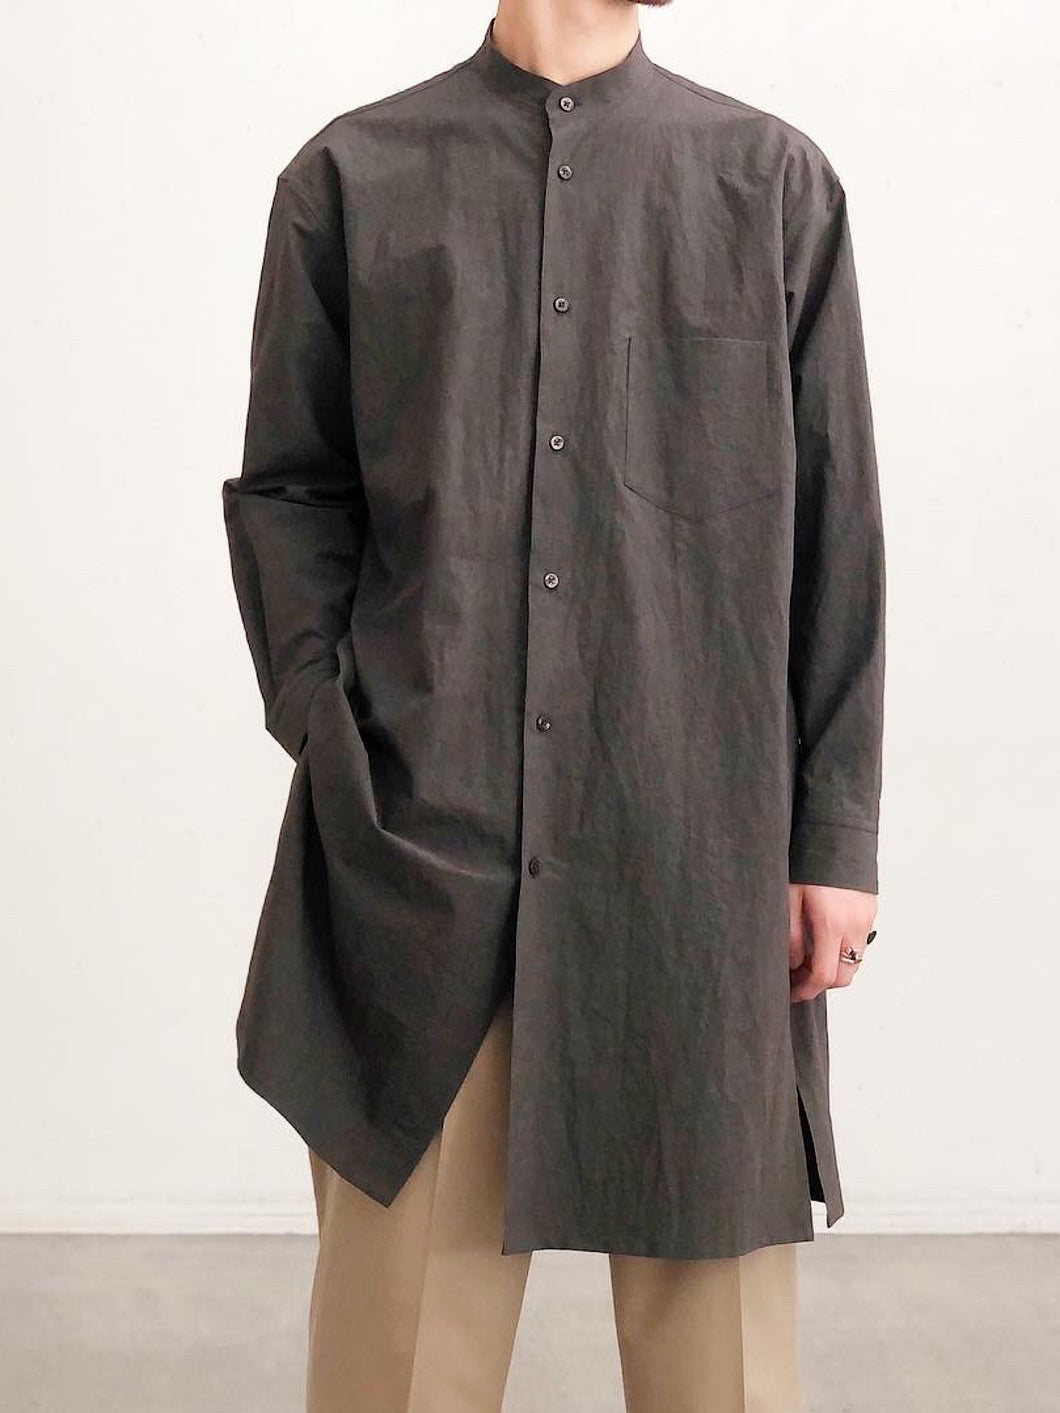 WEWILL / BAND COLLAR LONG SHIRTS